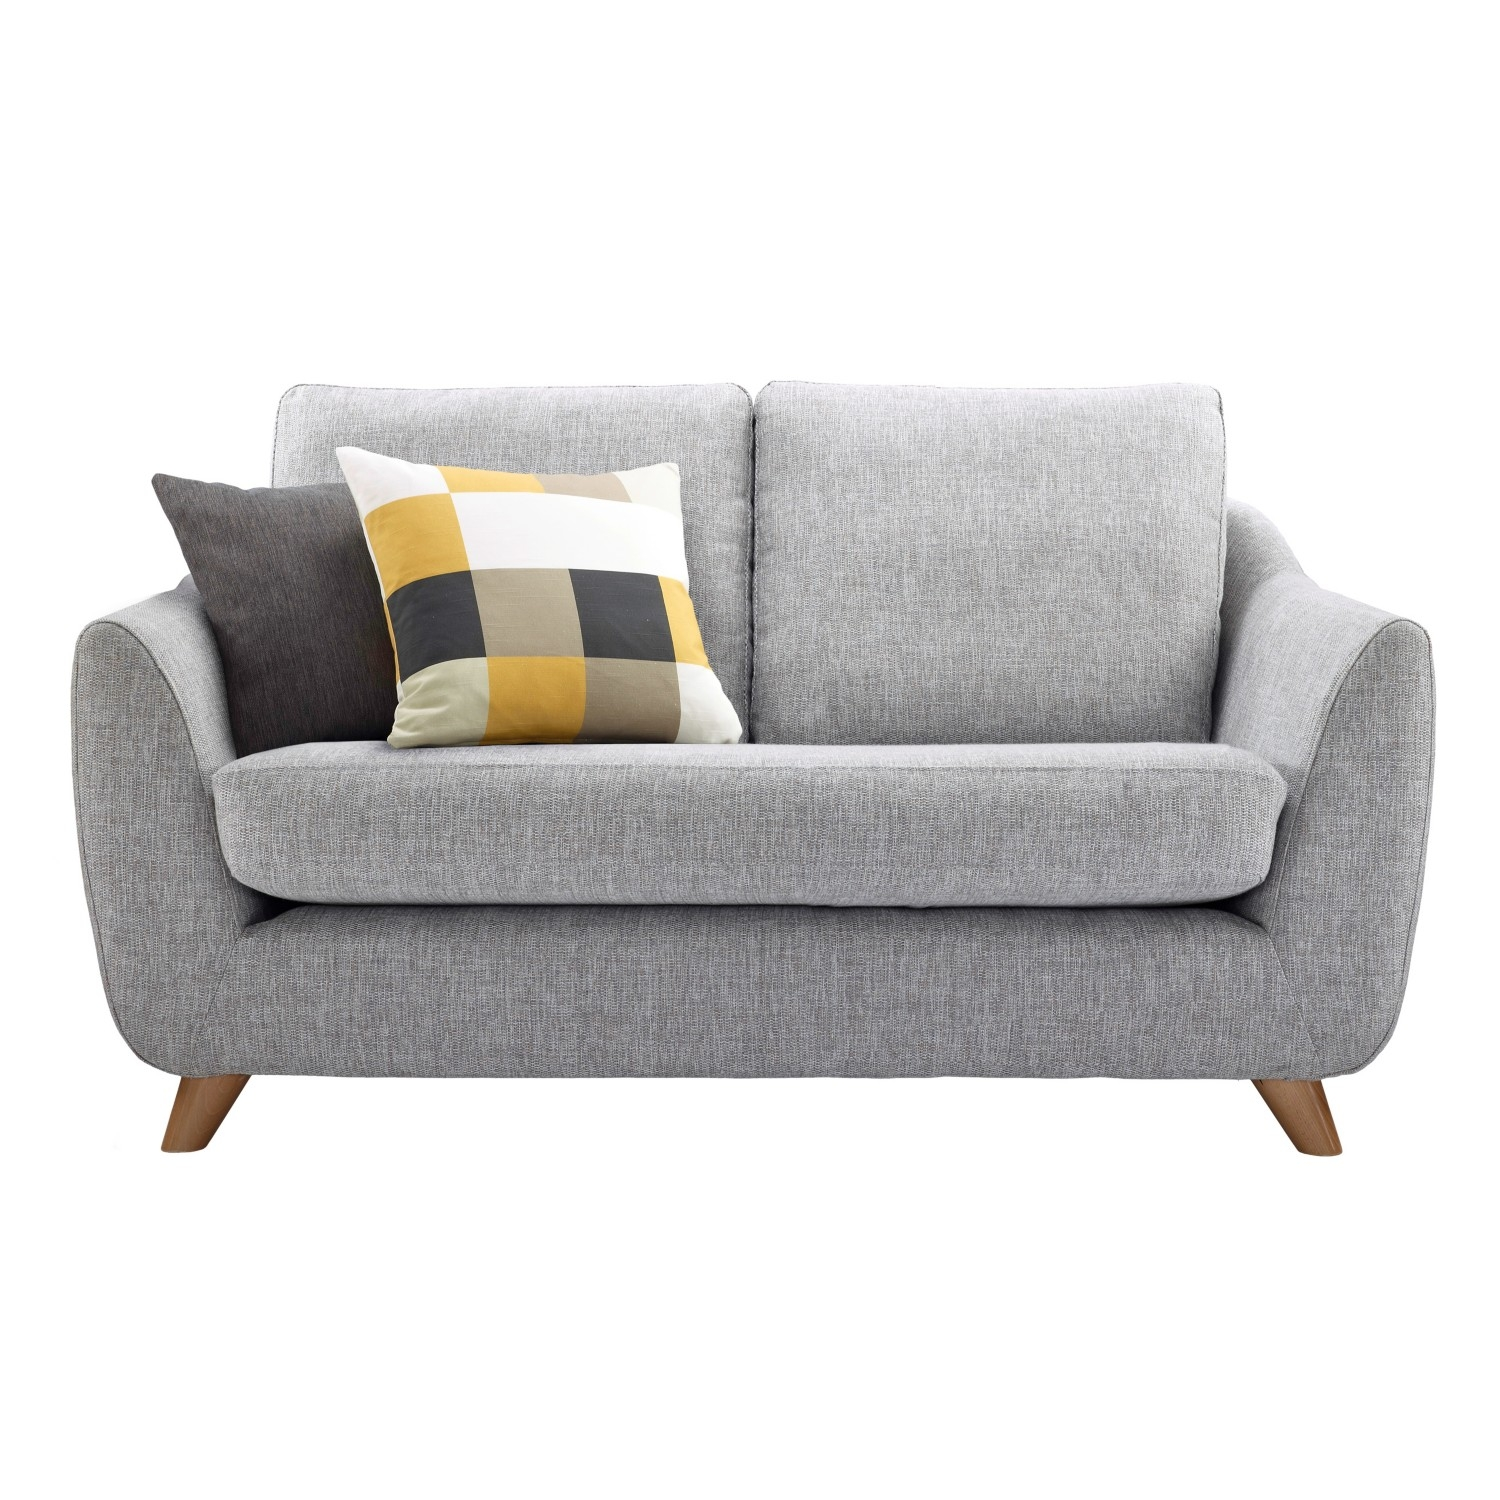 Discount Modern Sofas: 12 Best Of Cool Small Sofas